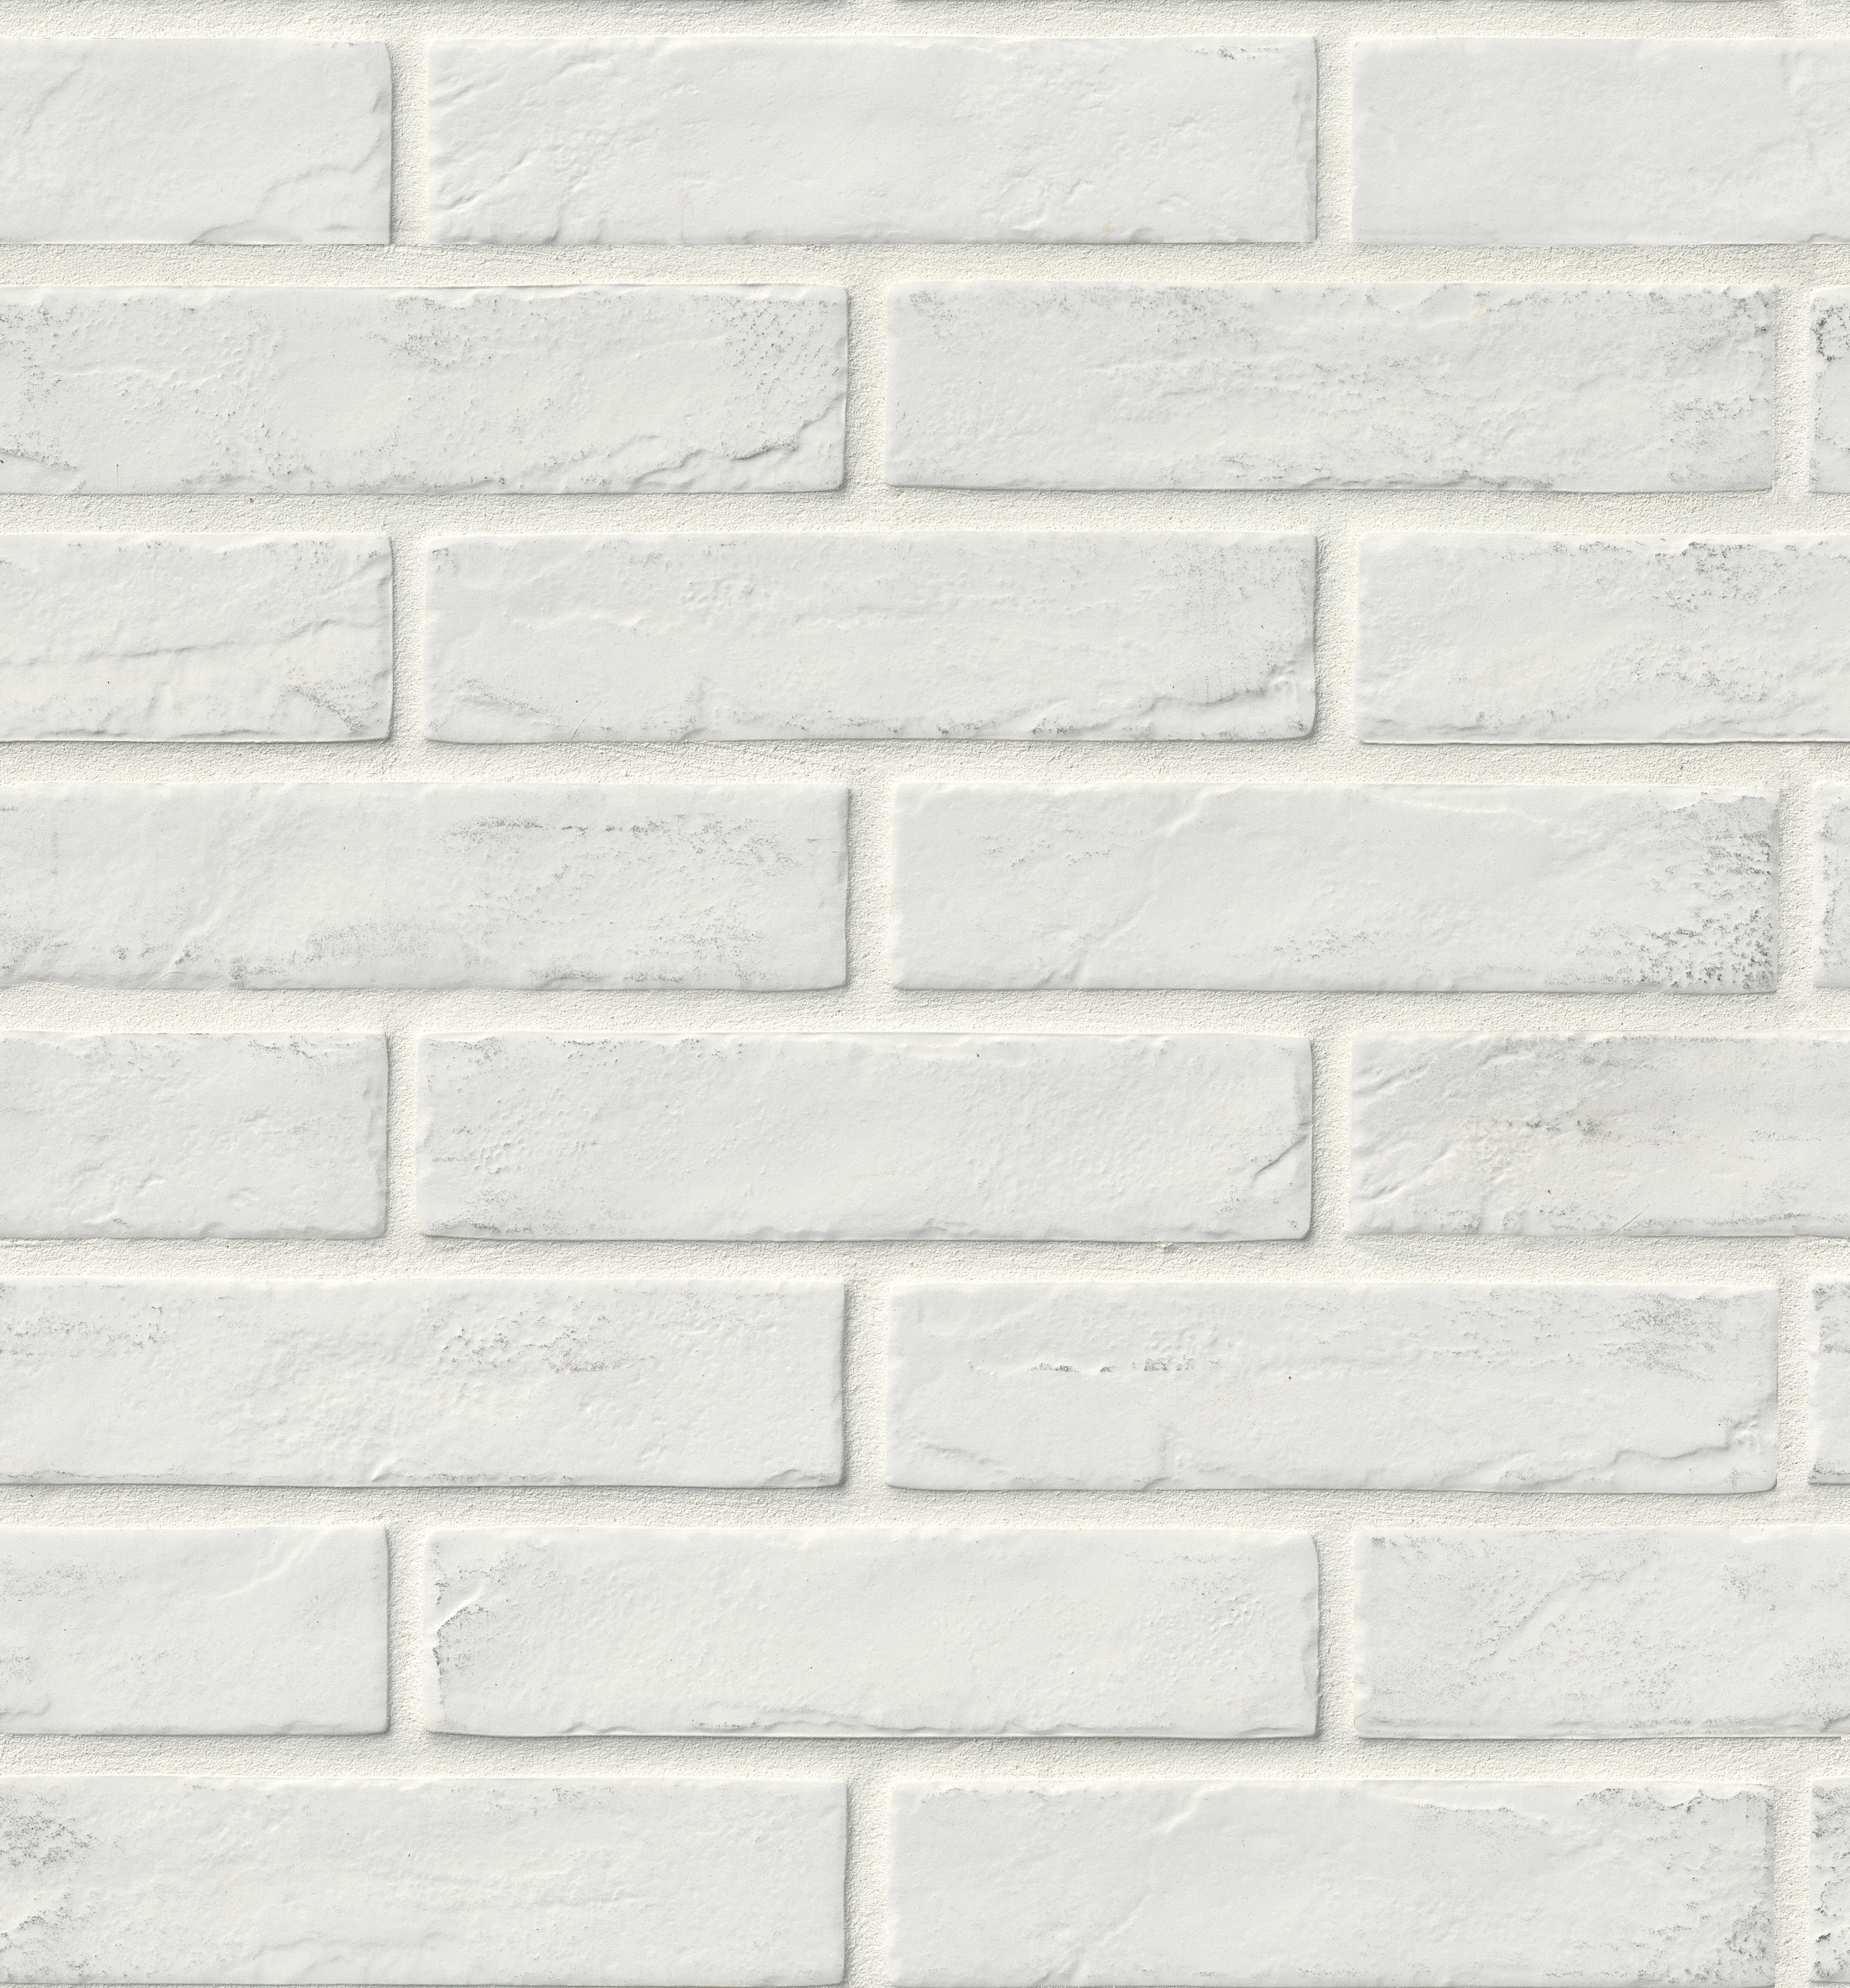 Msi capella 233 x 10 porcelain subway tile reviews wayfair dailygadgetfo Gallery